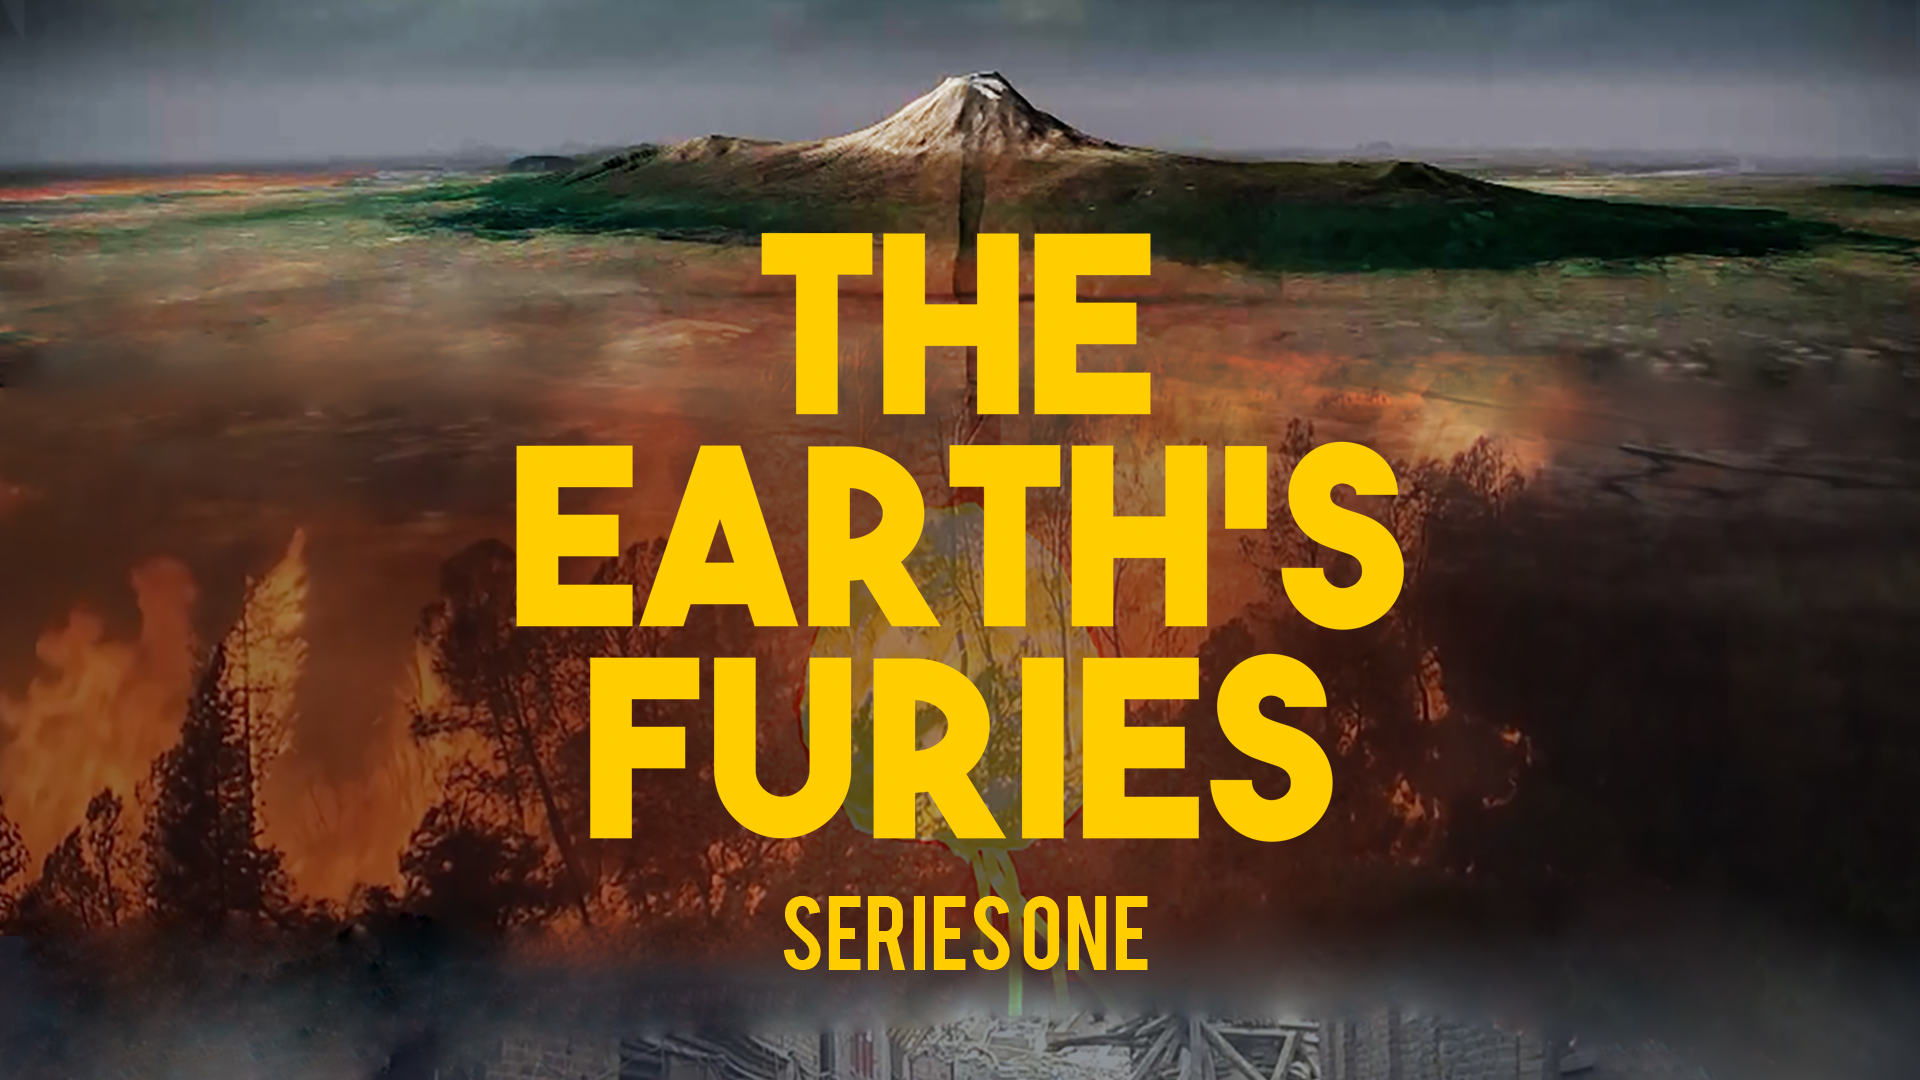 The Earth's Furies